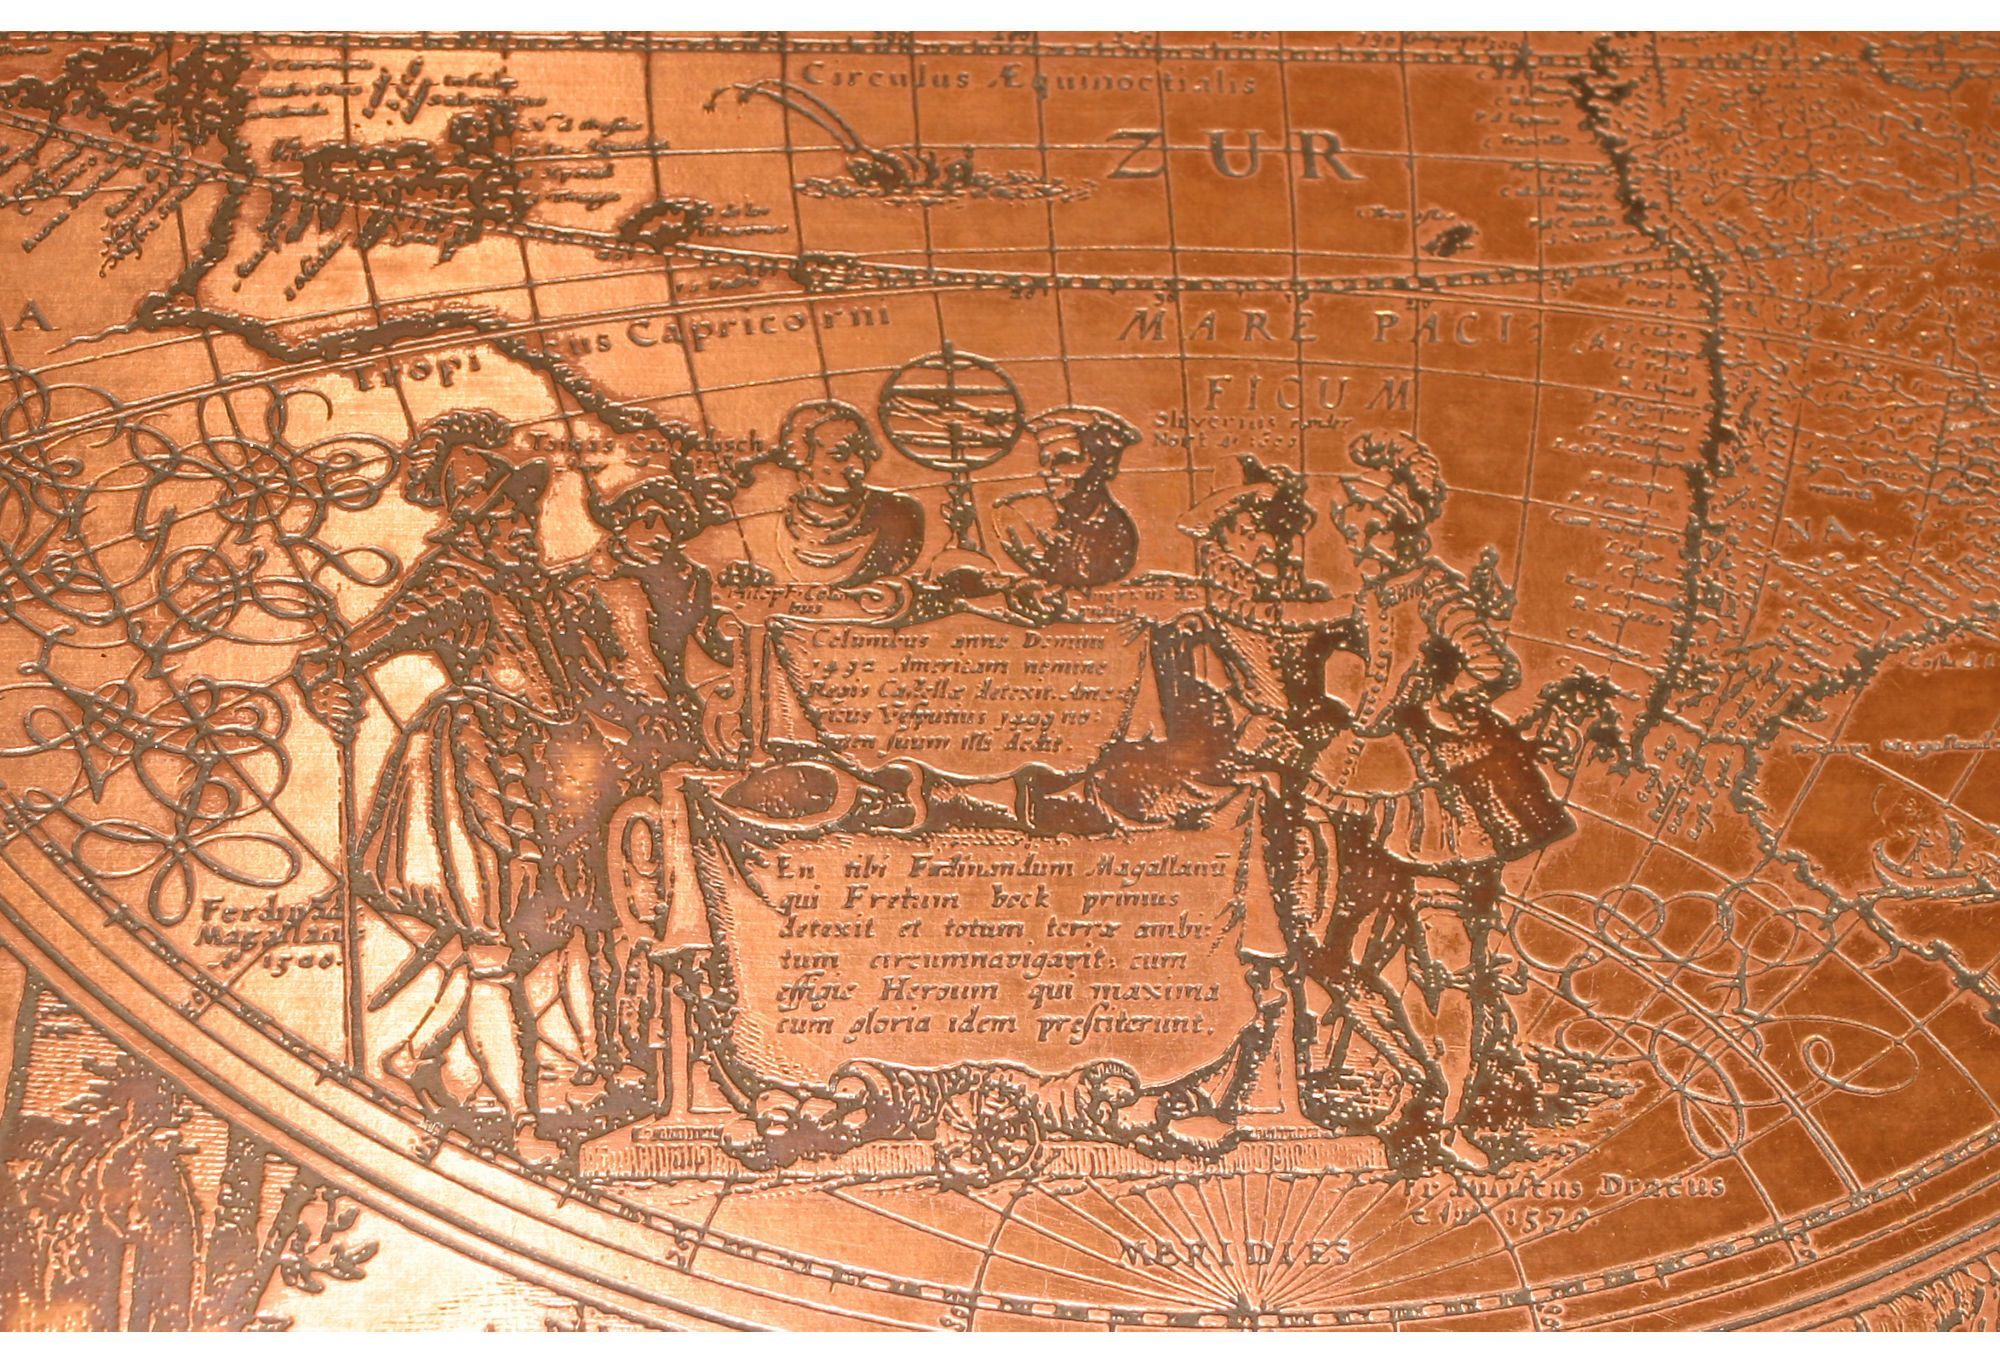 Ornate coffee table with copper top consisting of a world map ornate coffee table with copper top consisting of a world map engraving plate geotapseo Gallery